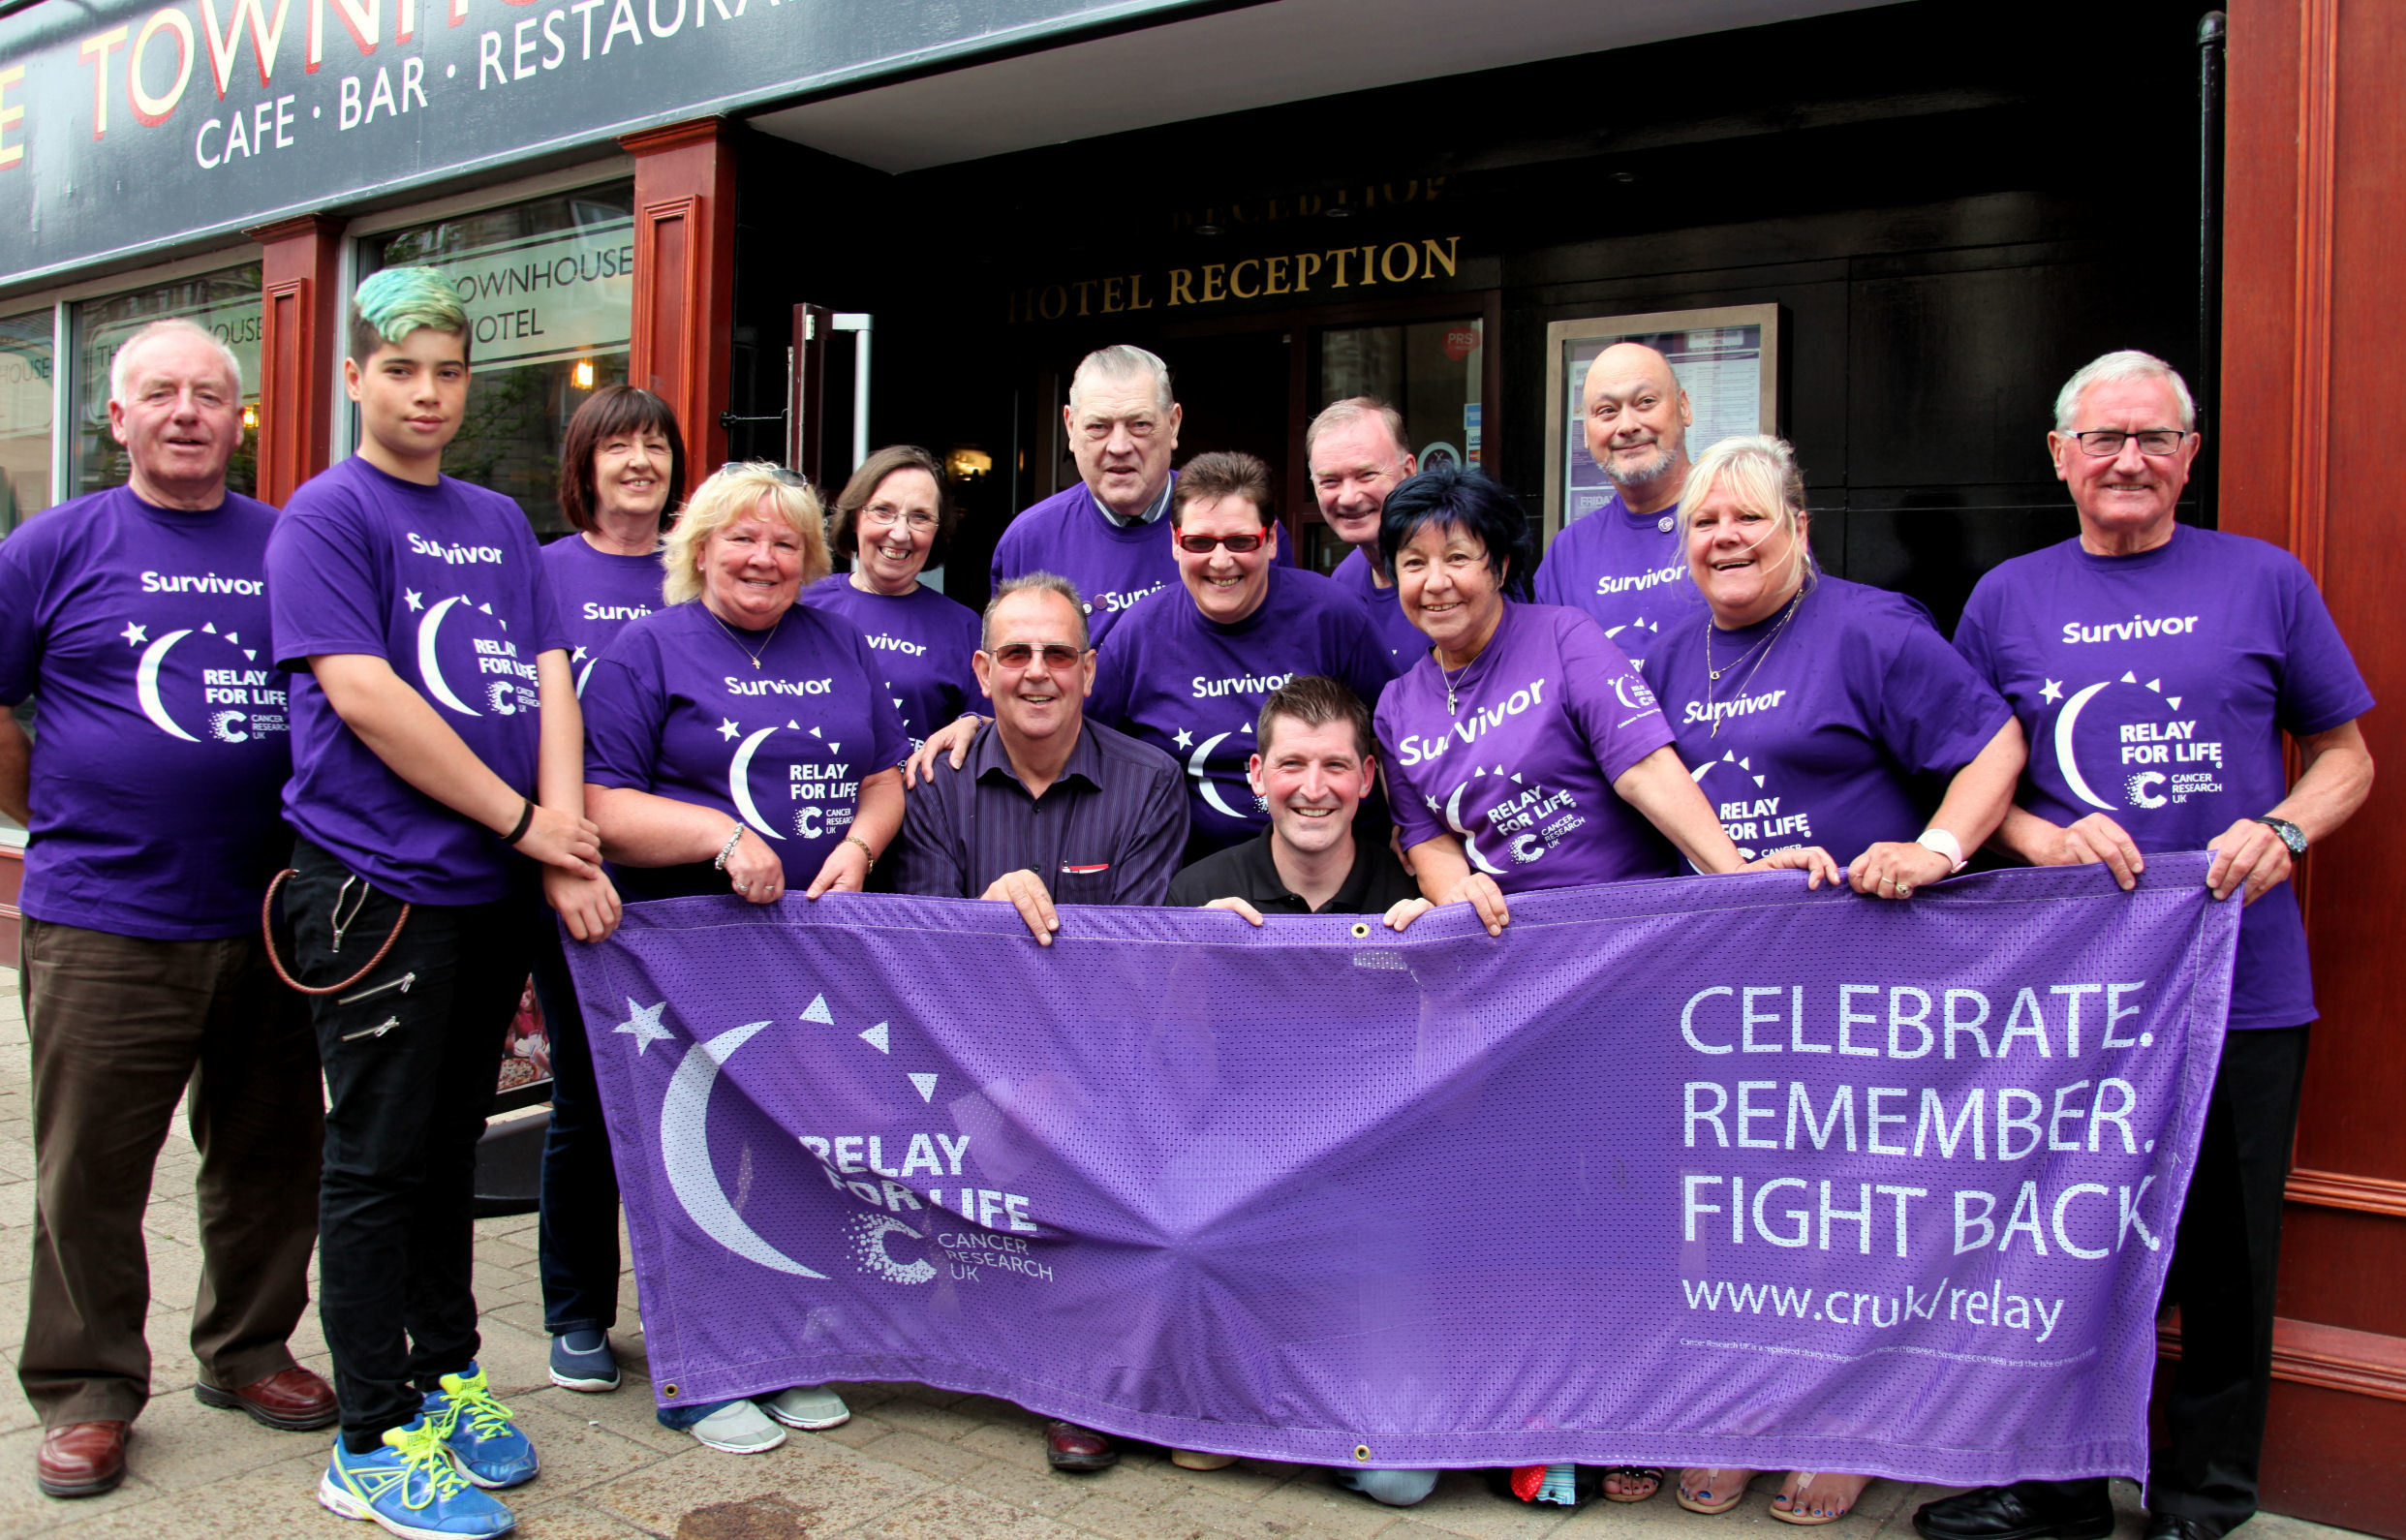 A group of cancer survivors gathered in Arbroath ahead of the town's Relay for Life event